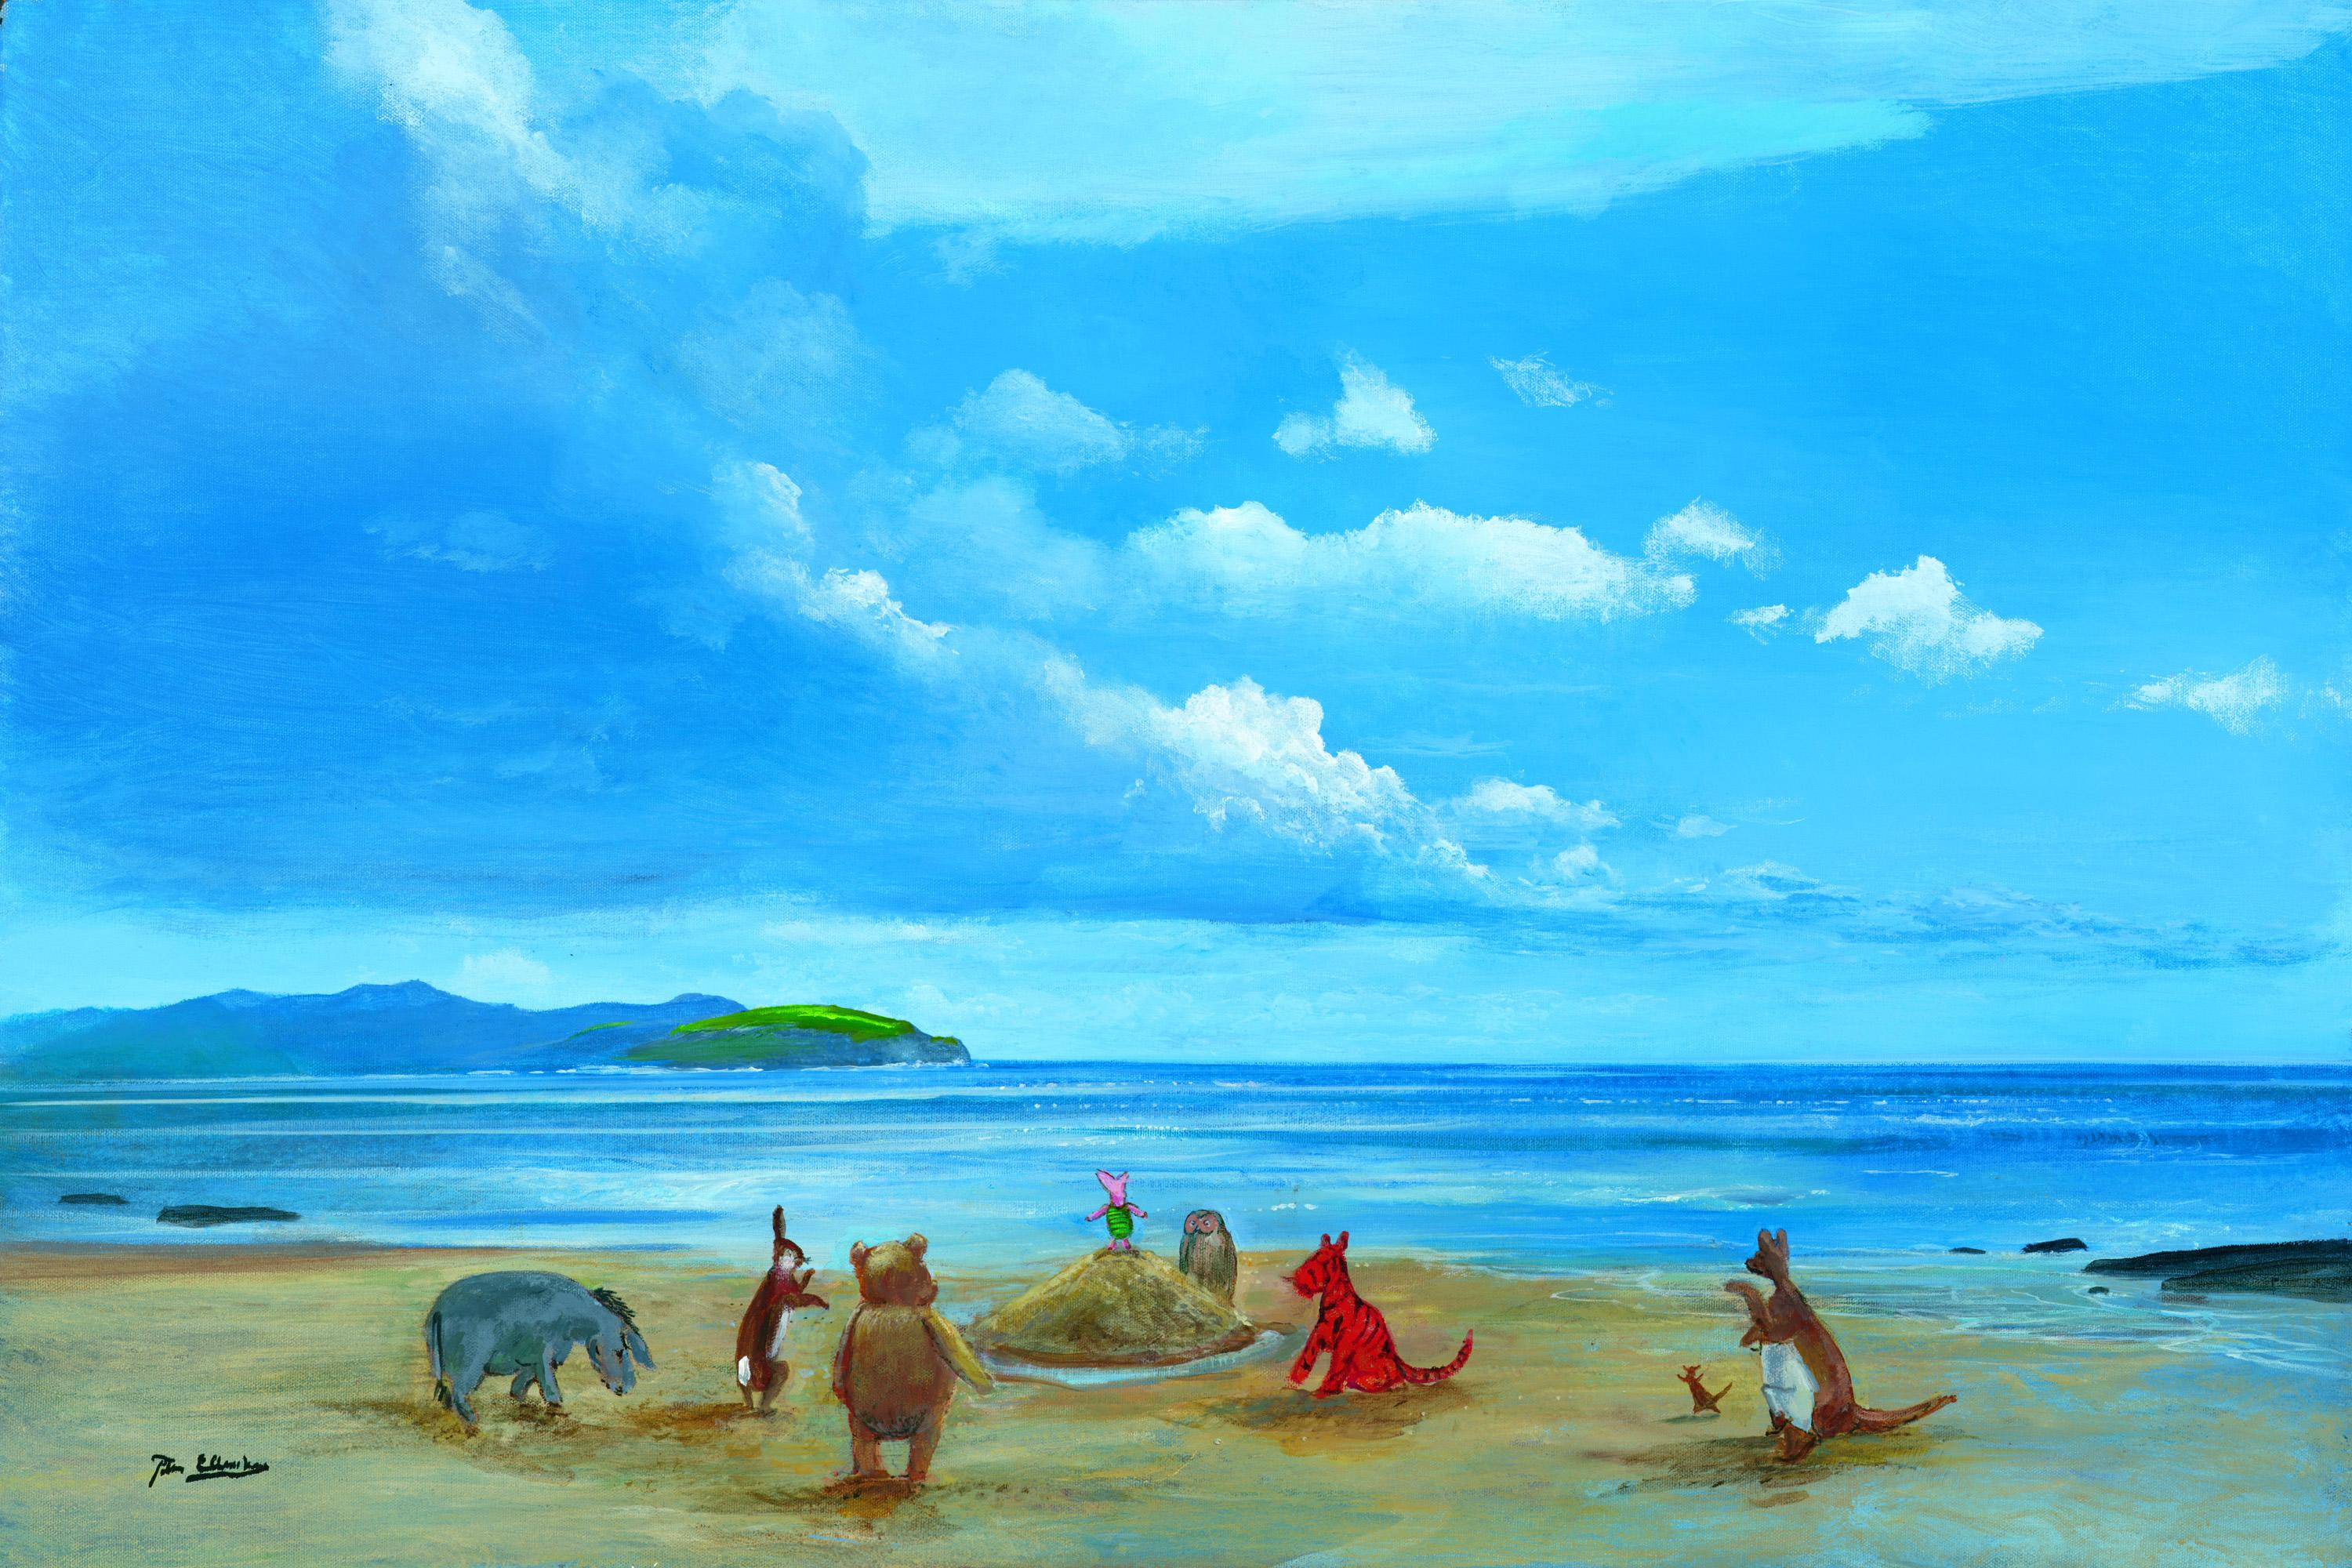 Winnie the Pooh & Friends at the Seaside